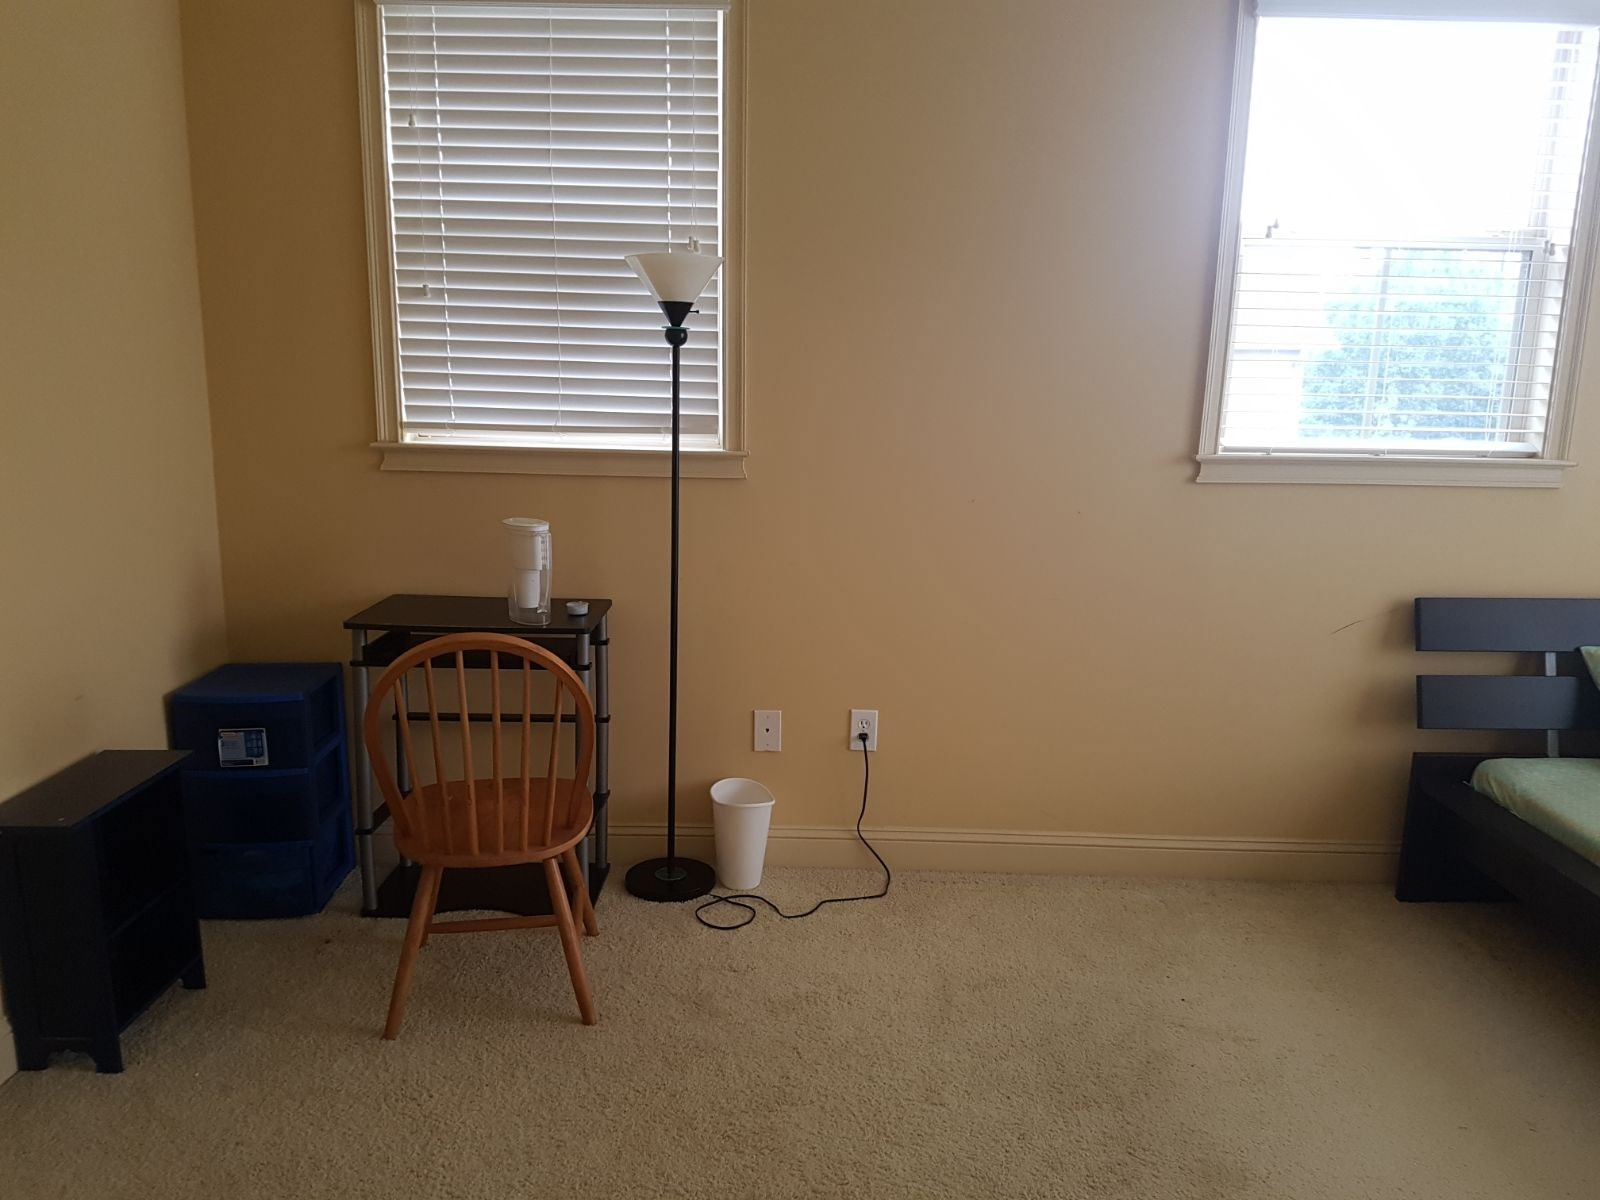 Clean One Bed Room In Dunwoody Area Close To COX/Mercedes/Indian Groceries/ Part 88